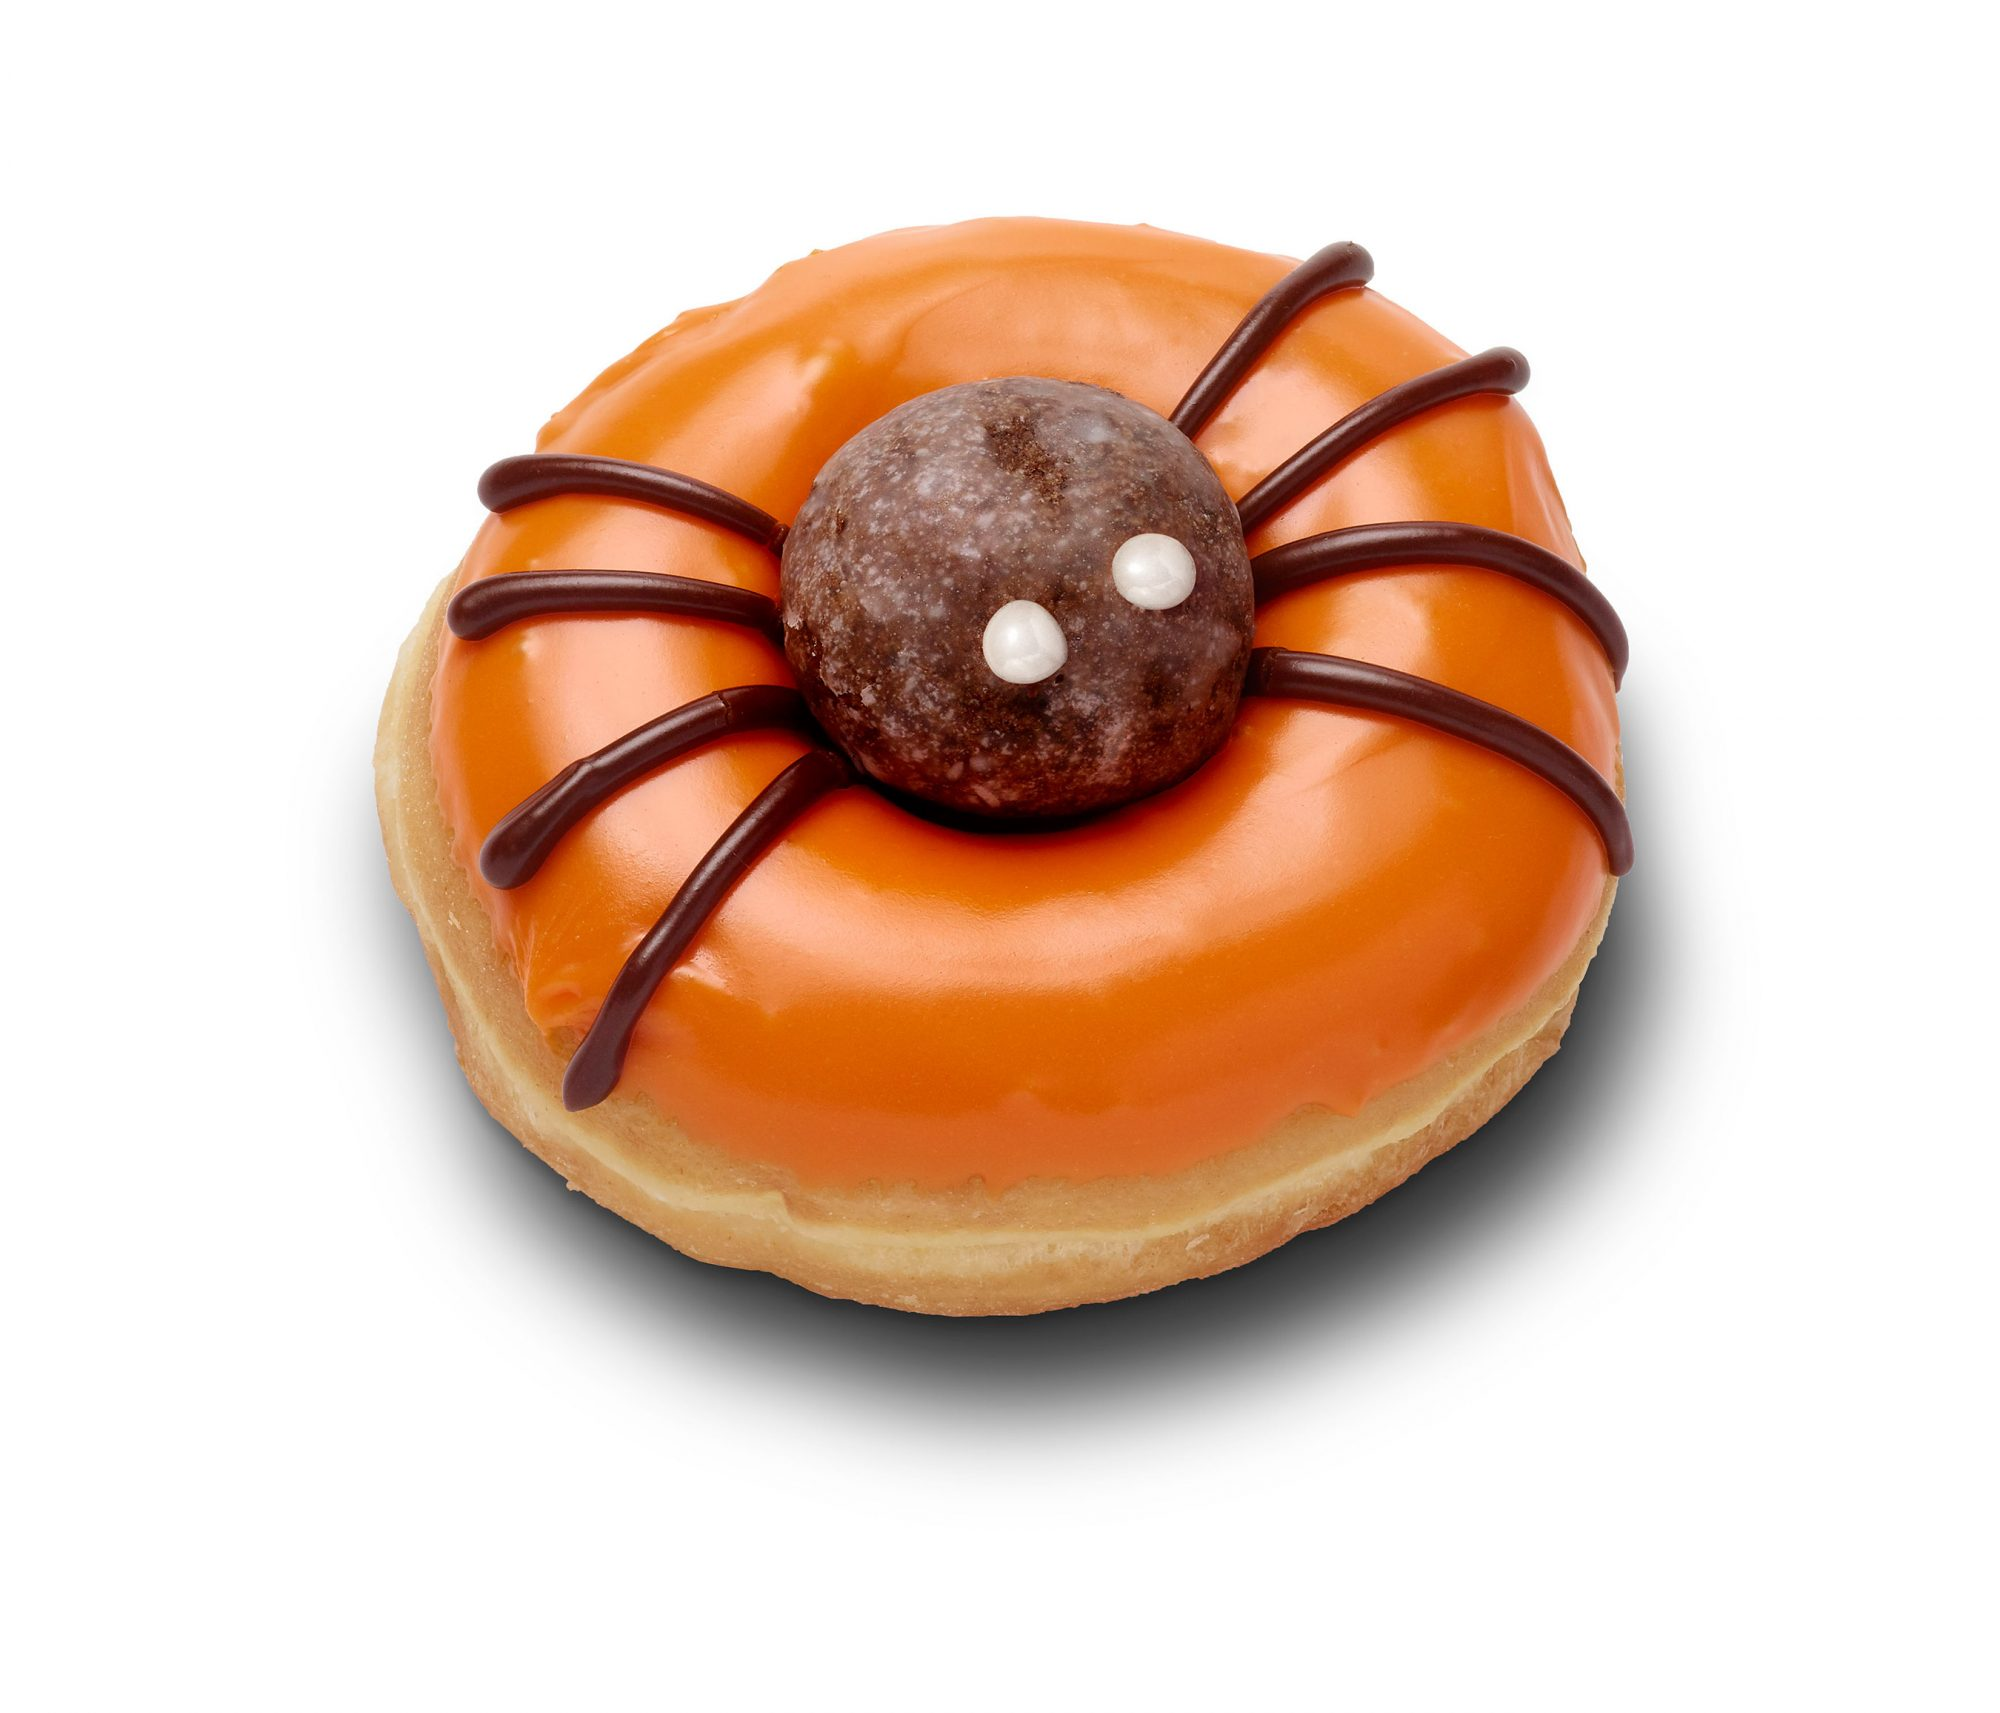 Halloween Spider Donut (October - 2018) (image + transparency)